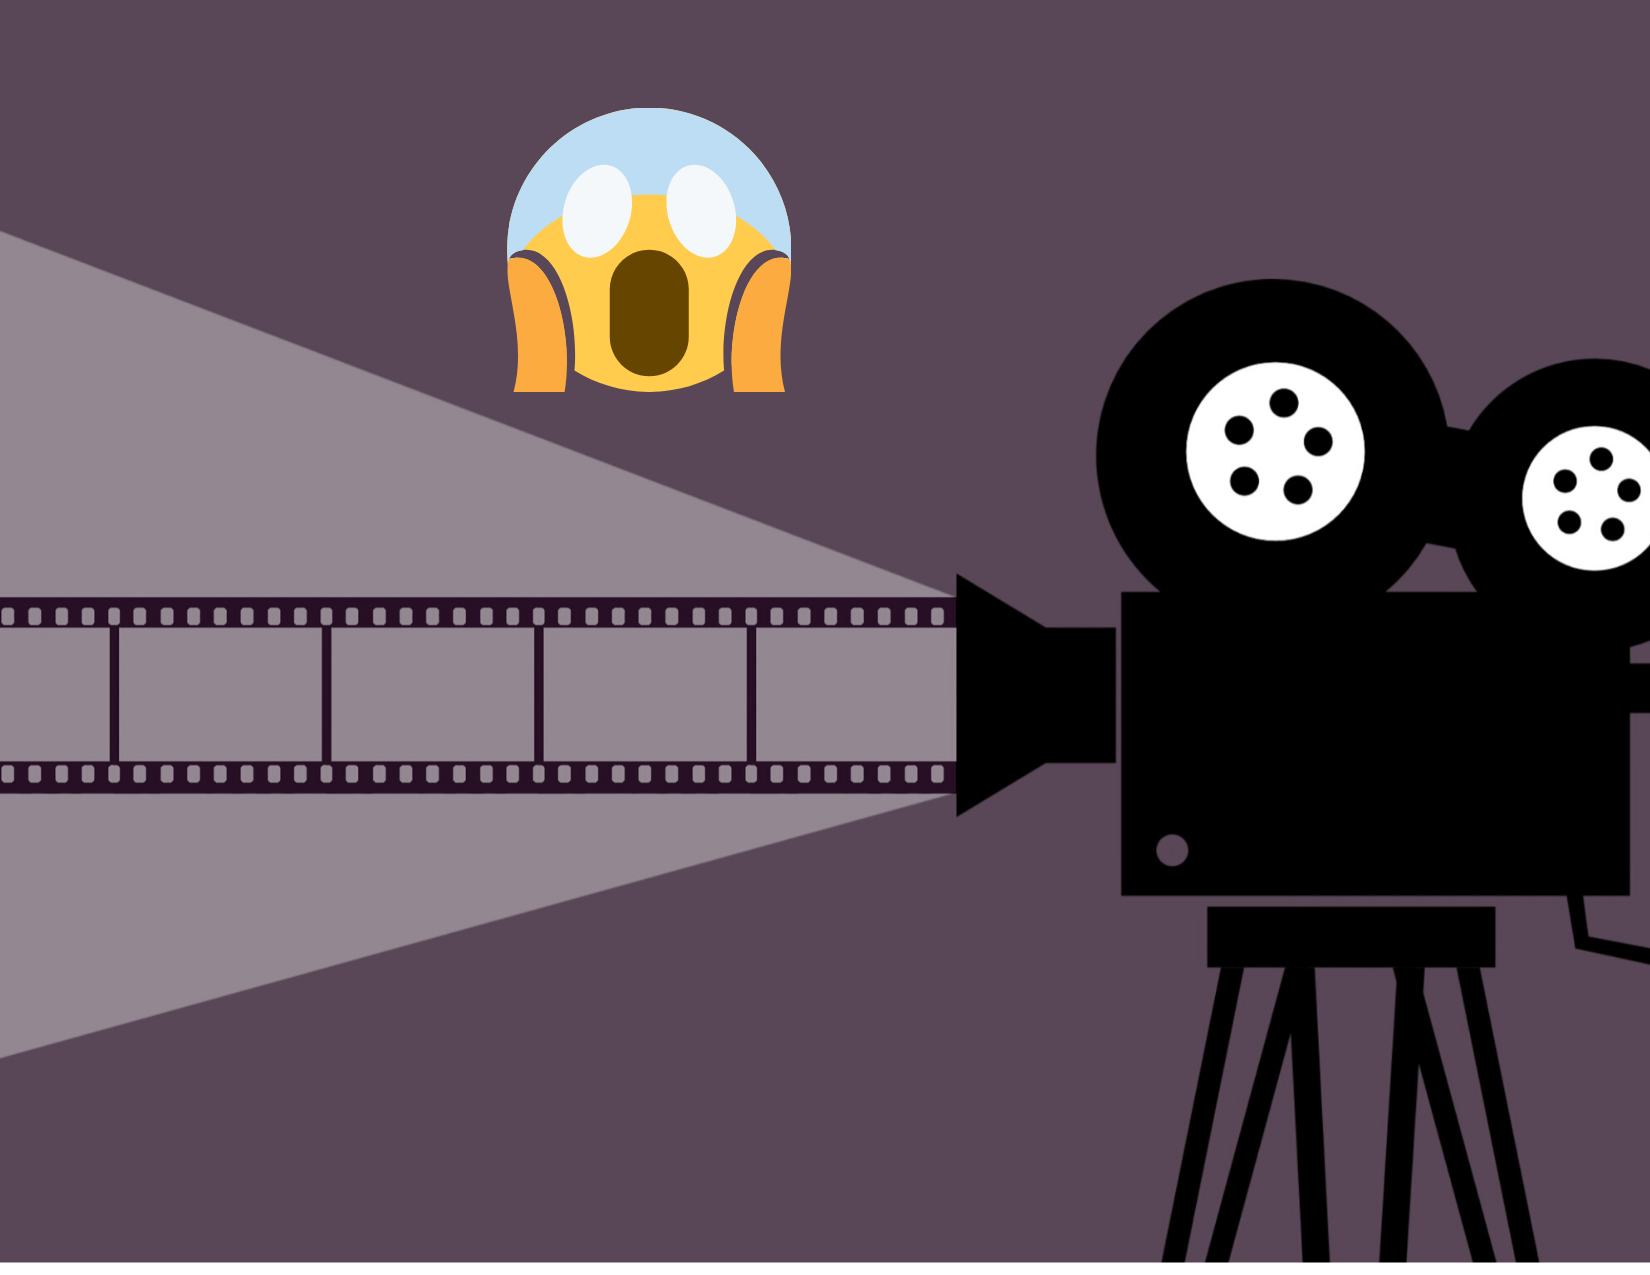 A large movie camera against a purple background. A shocked face emoji is placed above the movie camera